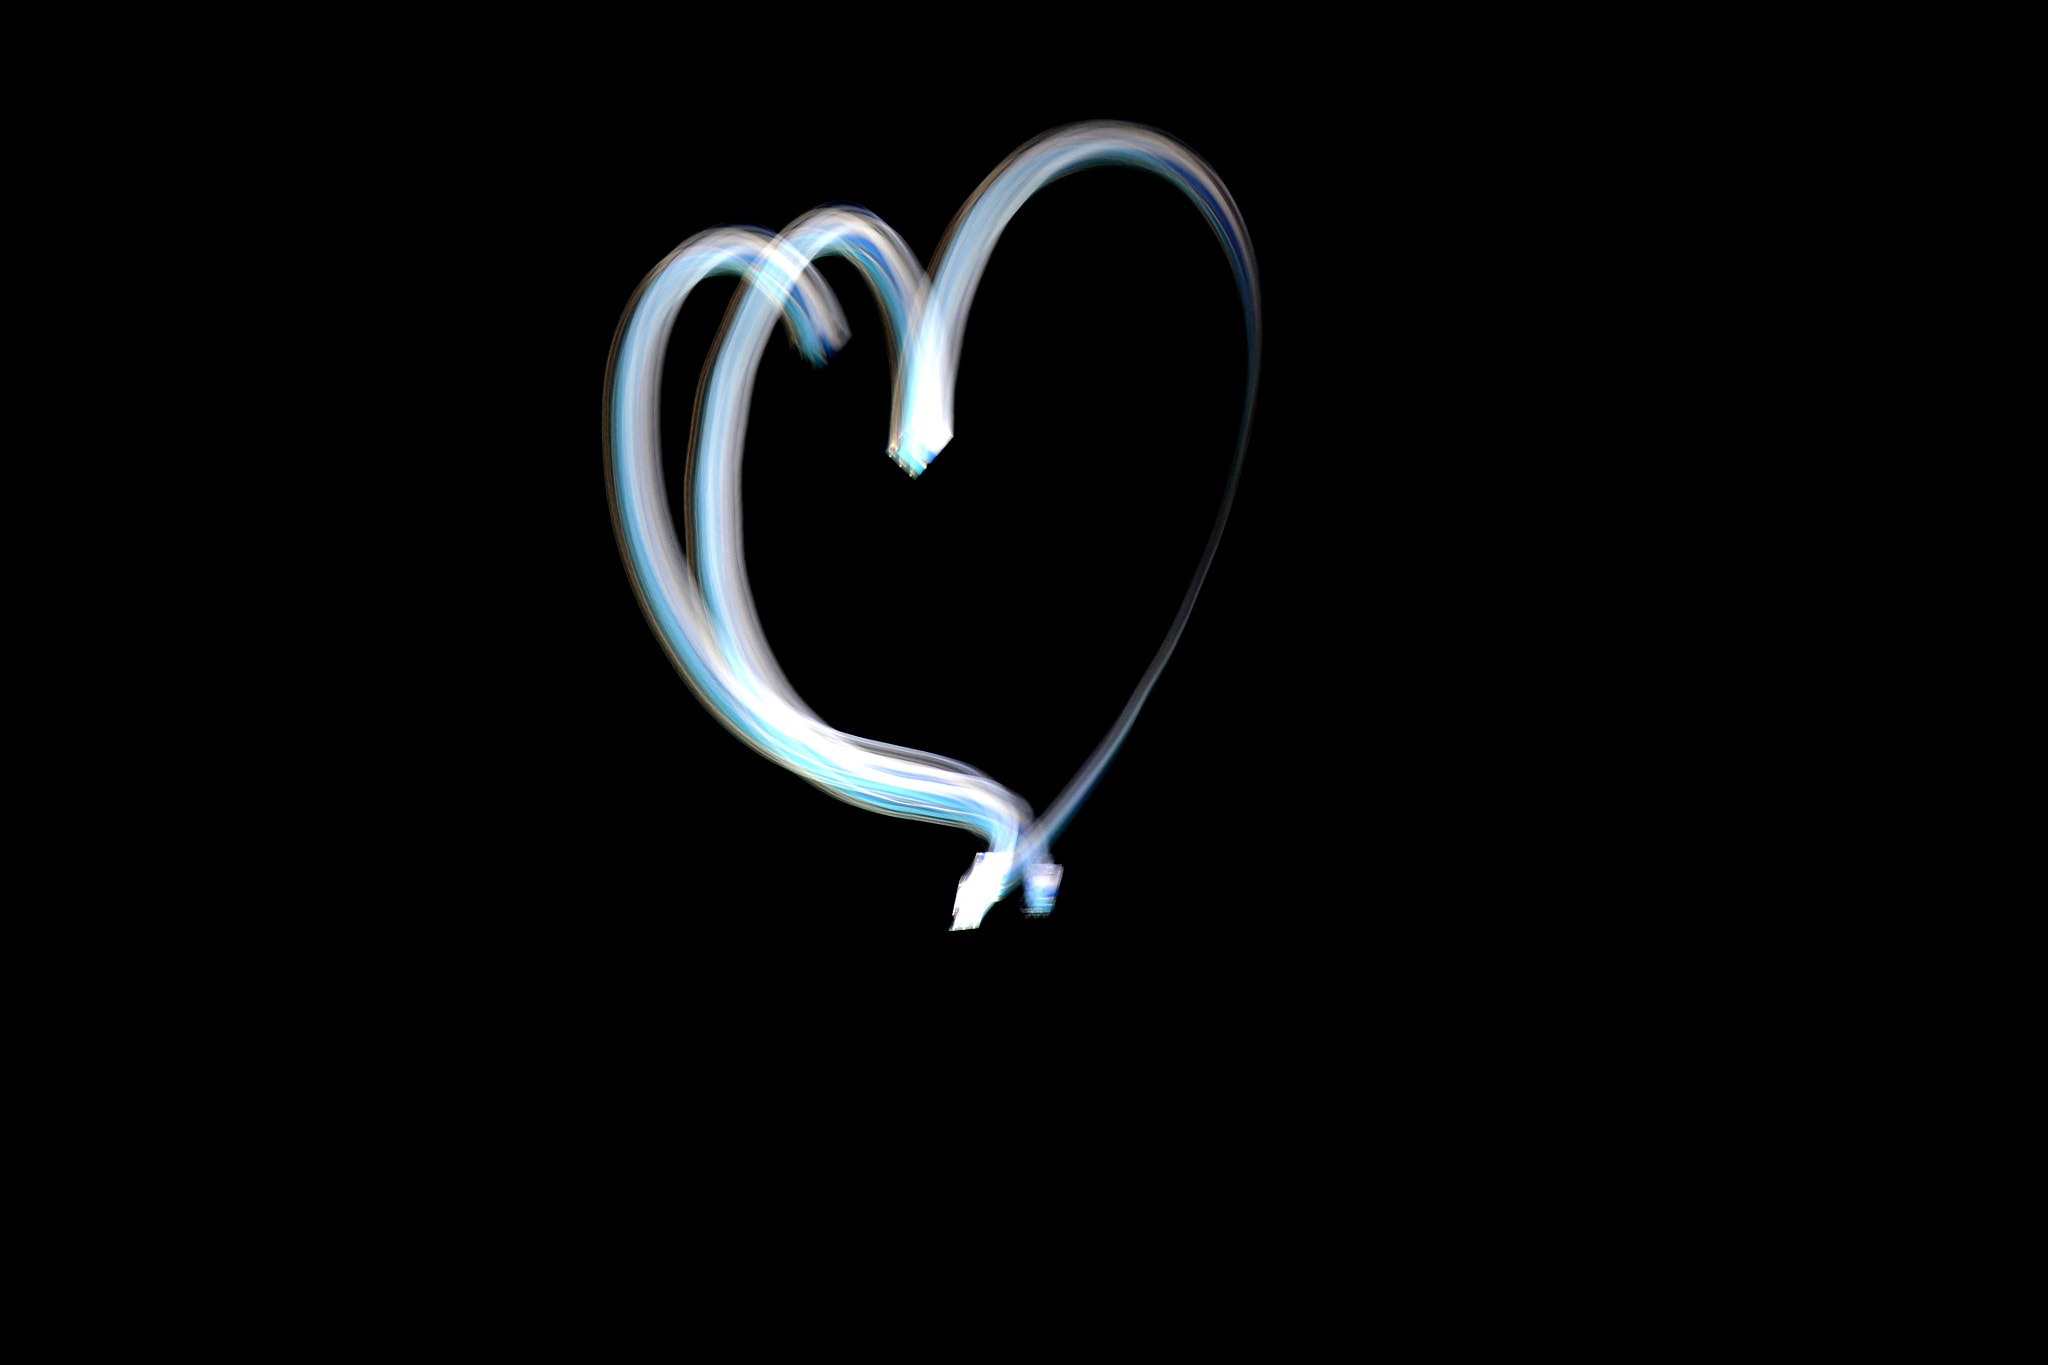 Photograph Light painting heart by Johnny Mendes on 500px